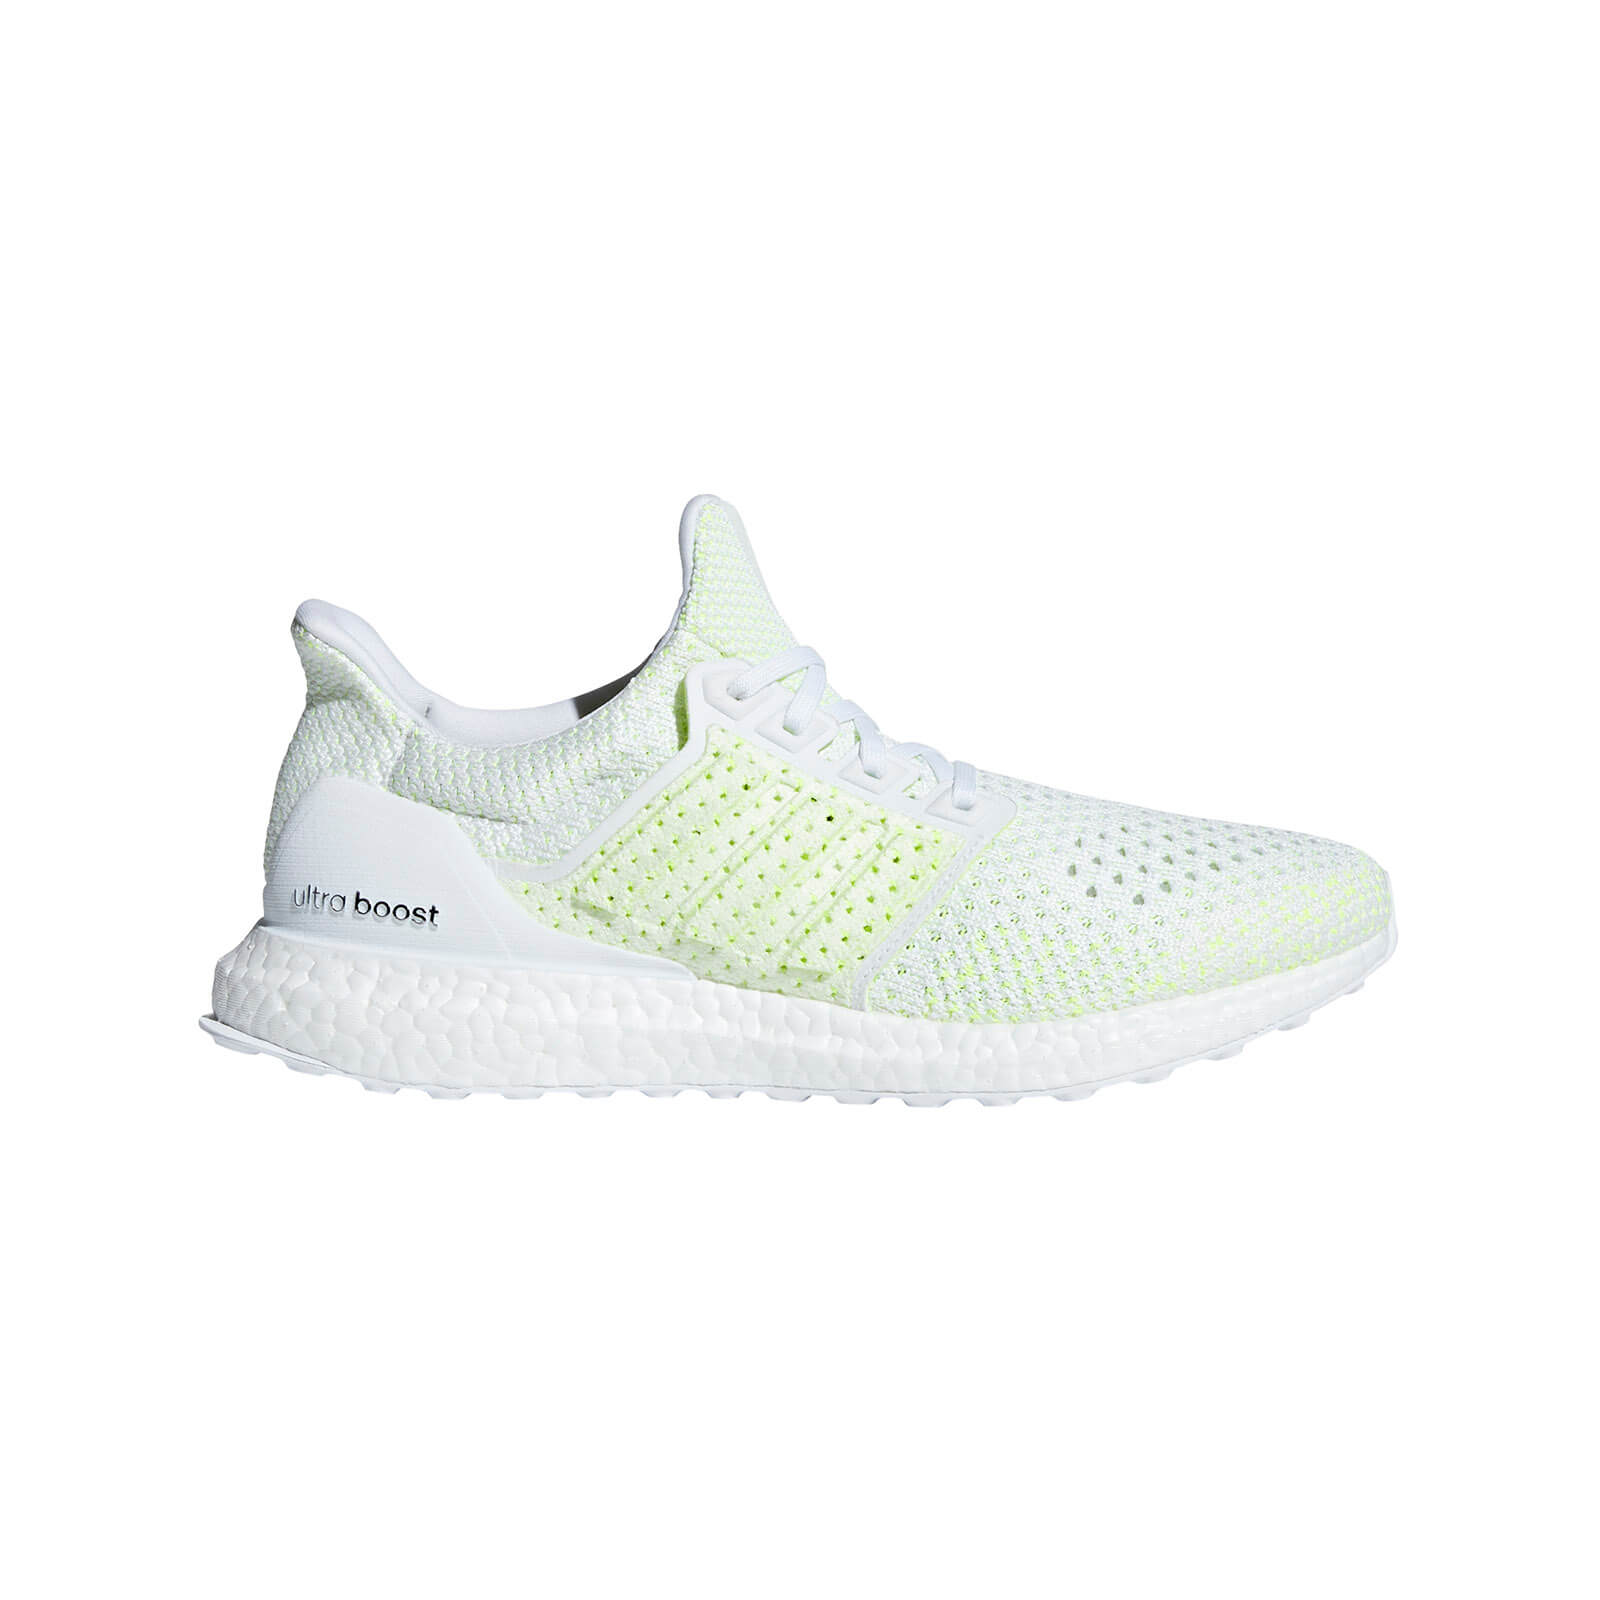 51ff4b620 adidas Men s Ultraboost Clima Running Shoes - White Green ...